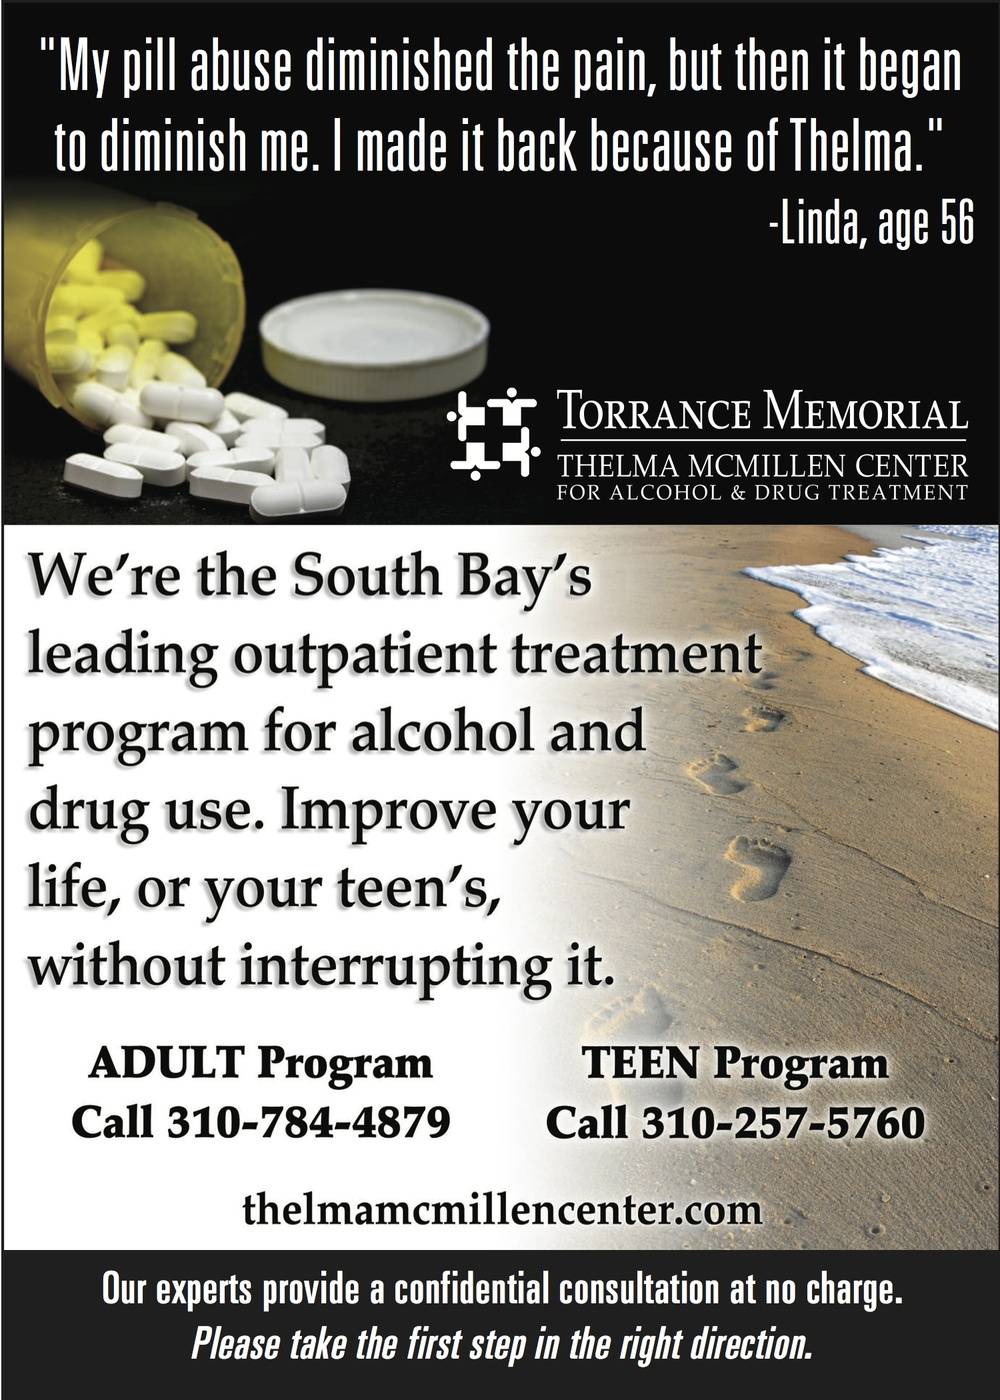 mcmillen-drug-treatment-pills-south-bay